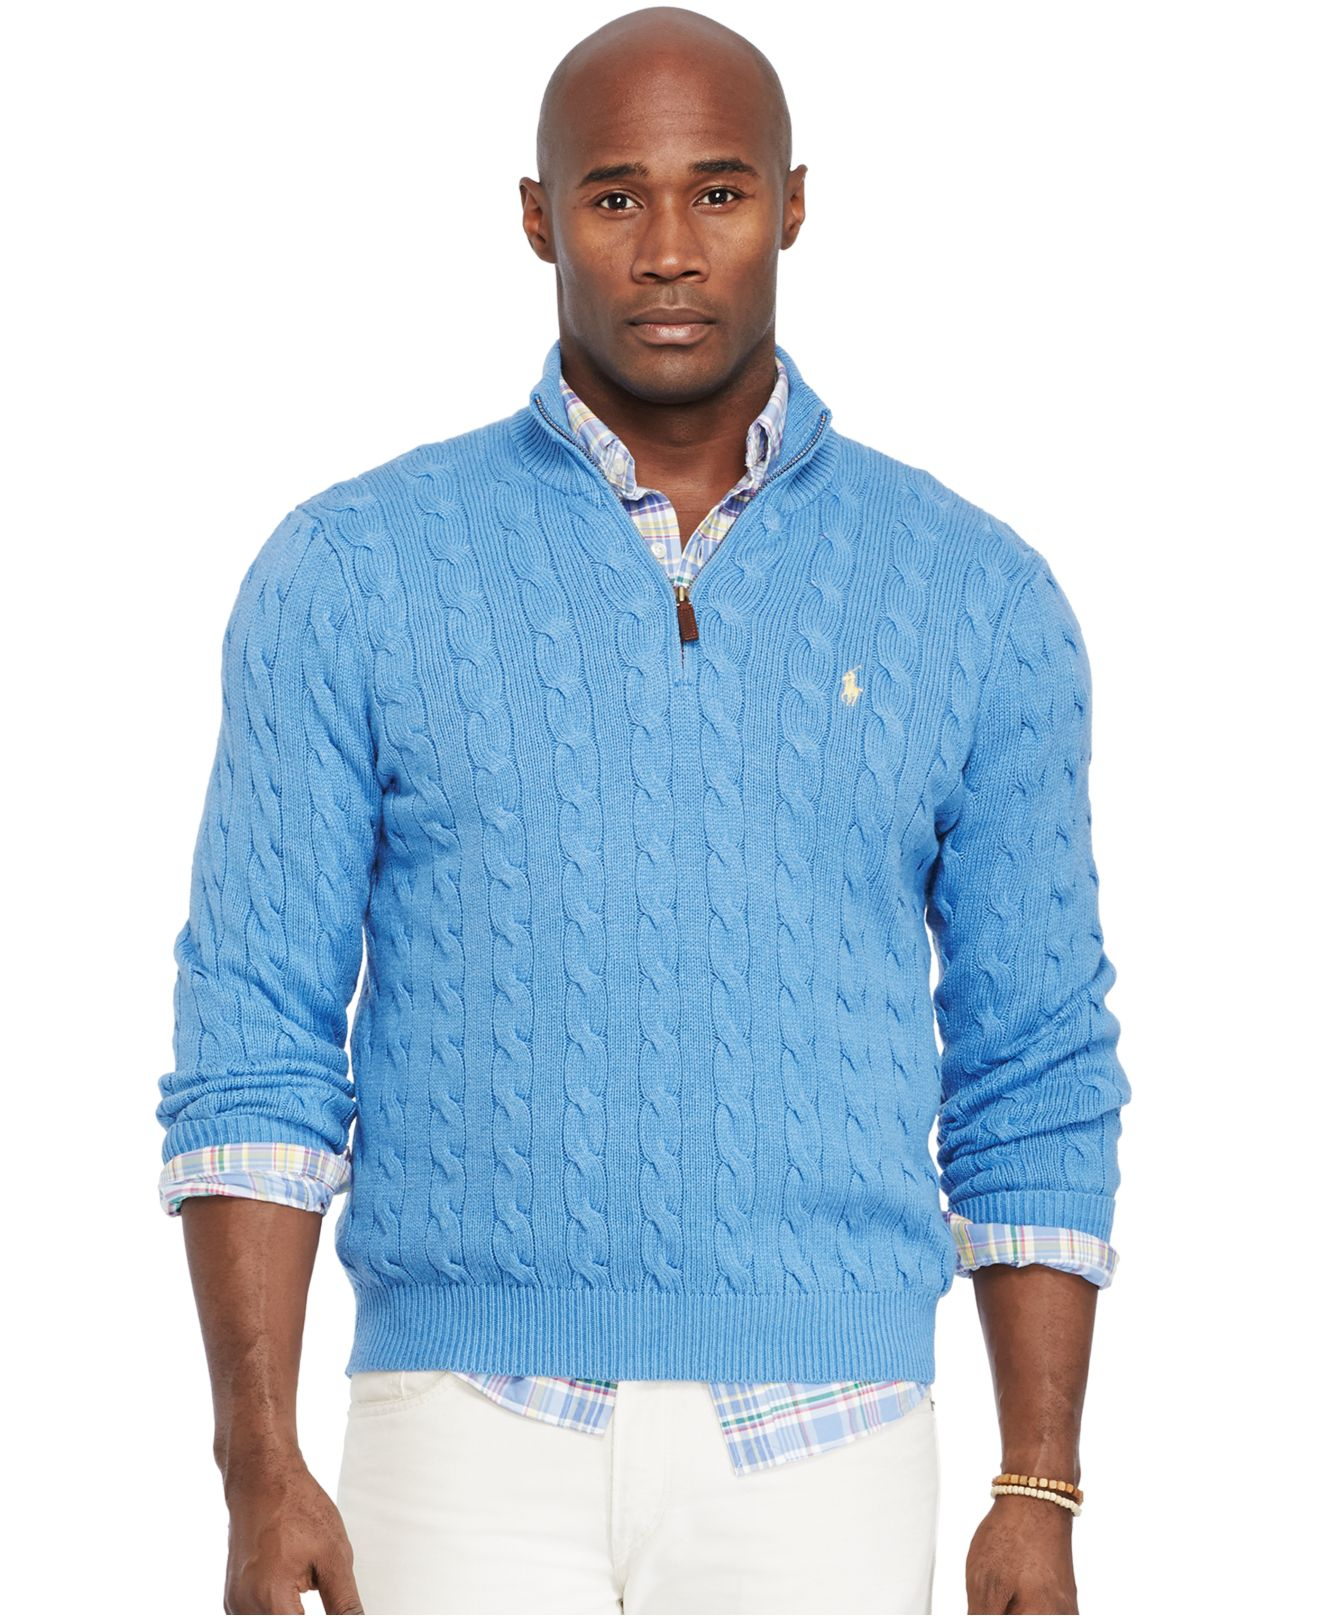 9aaaf032c9757c Polo Ralph Lauren Big And Tall Cable-Knit Tussah Silk Sweater in ...